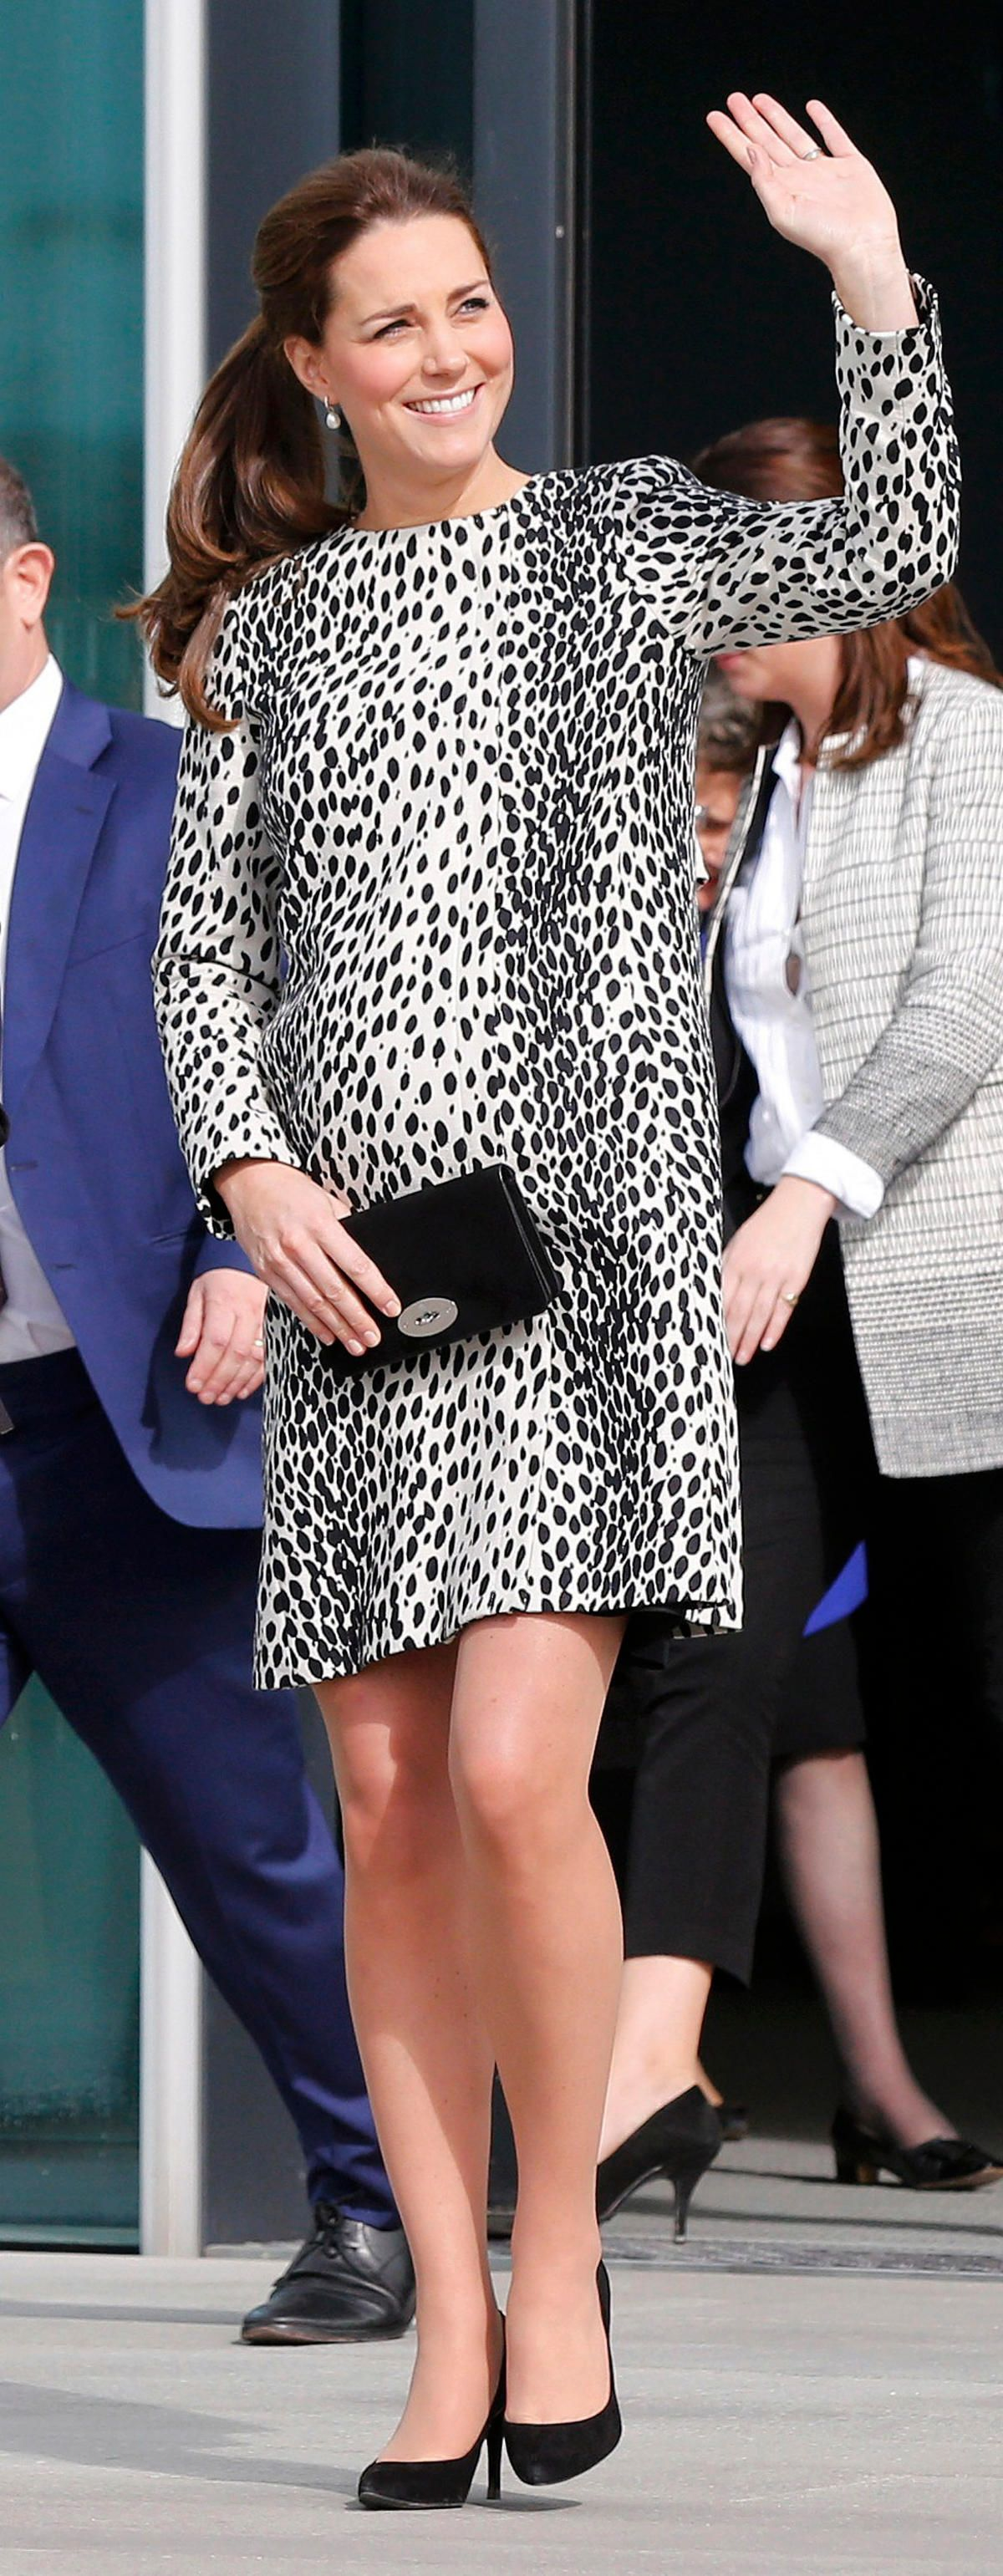 Middleton kate style animal print forecast to wear for spring in 2019